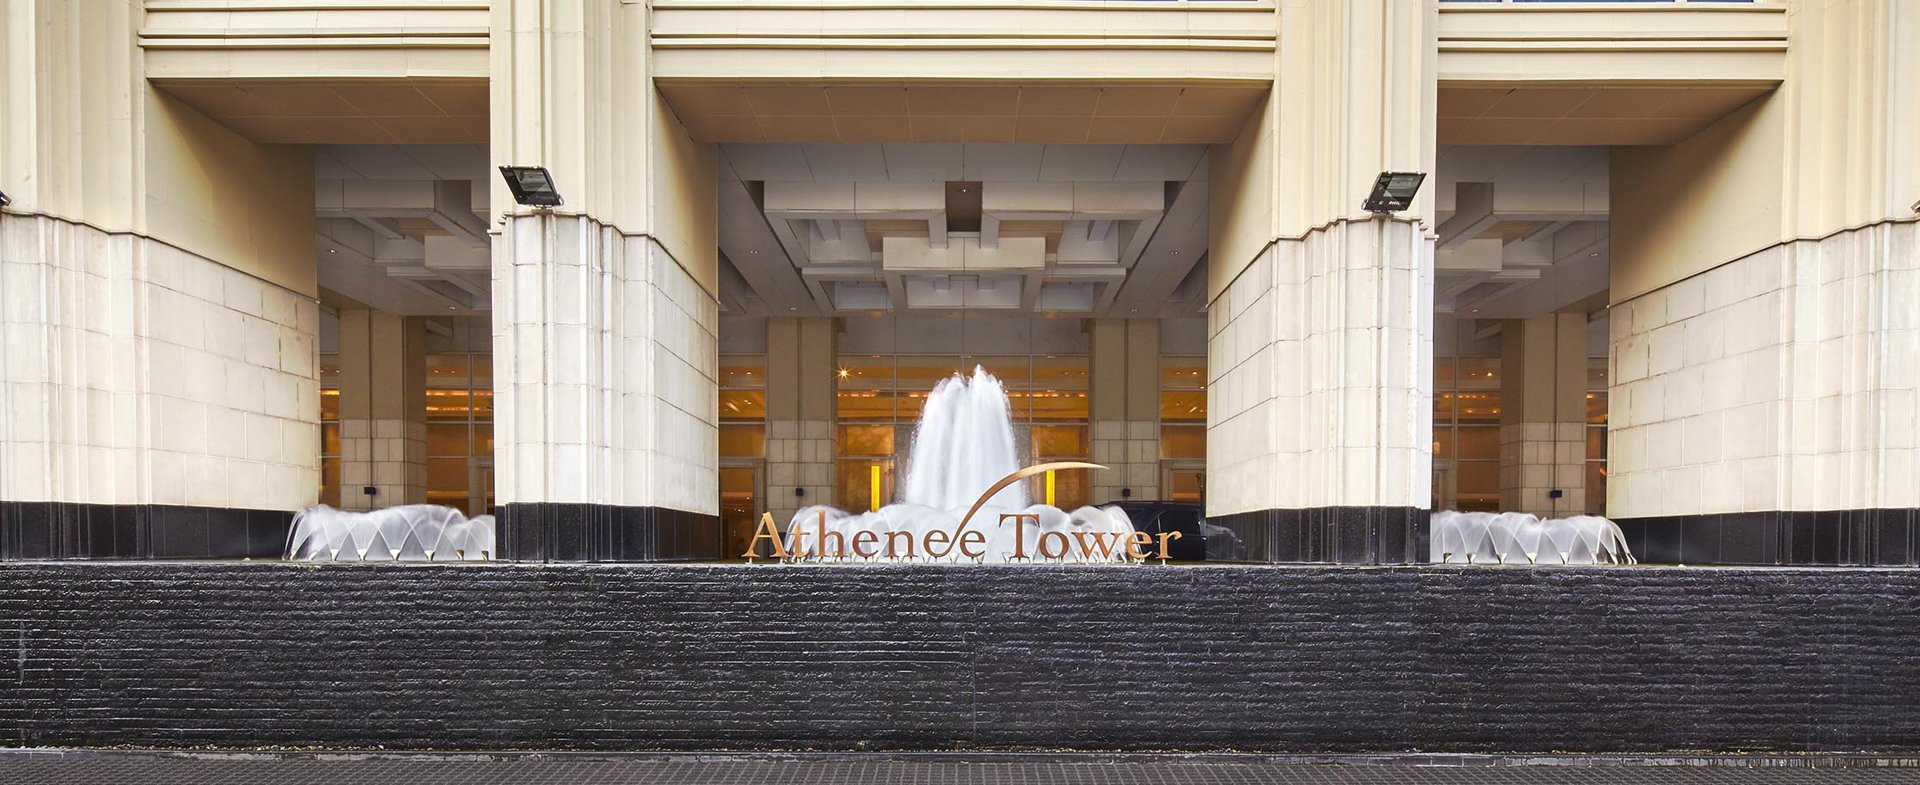 Athenee Tower